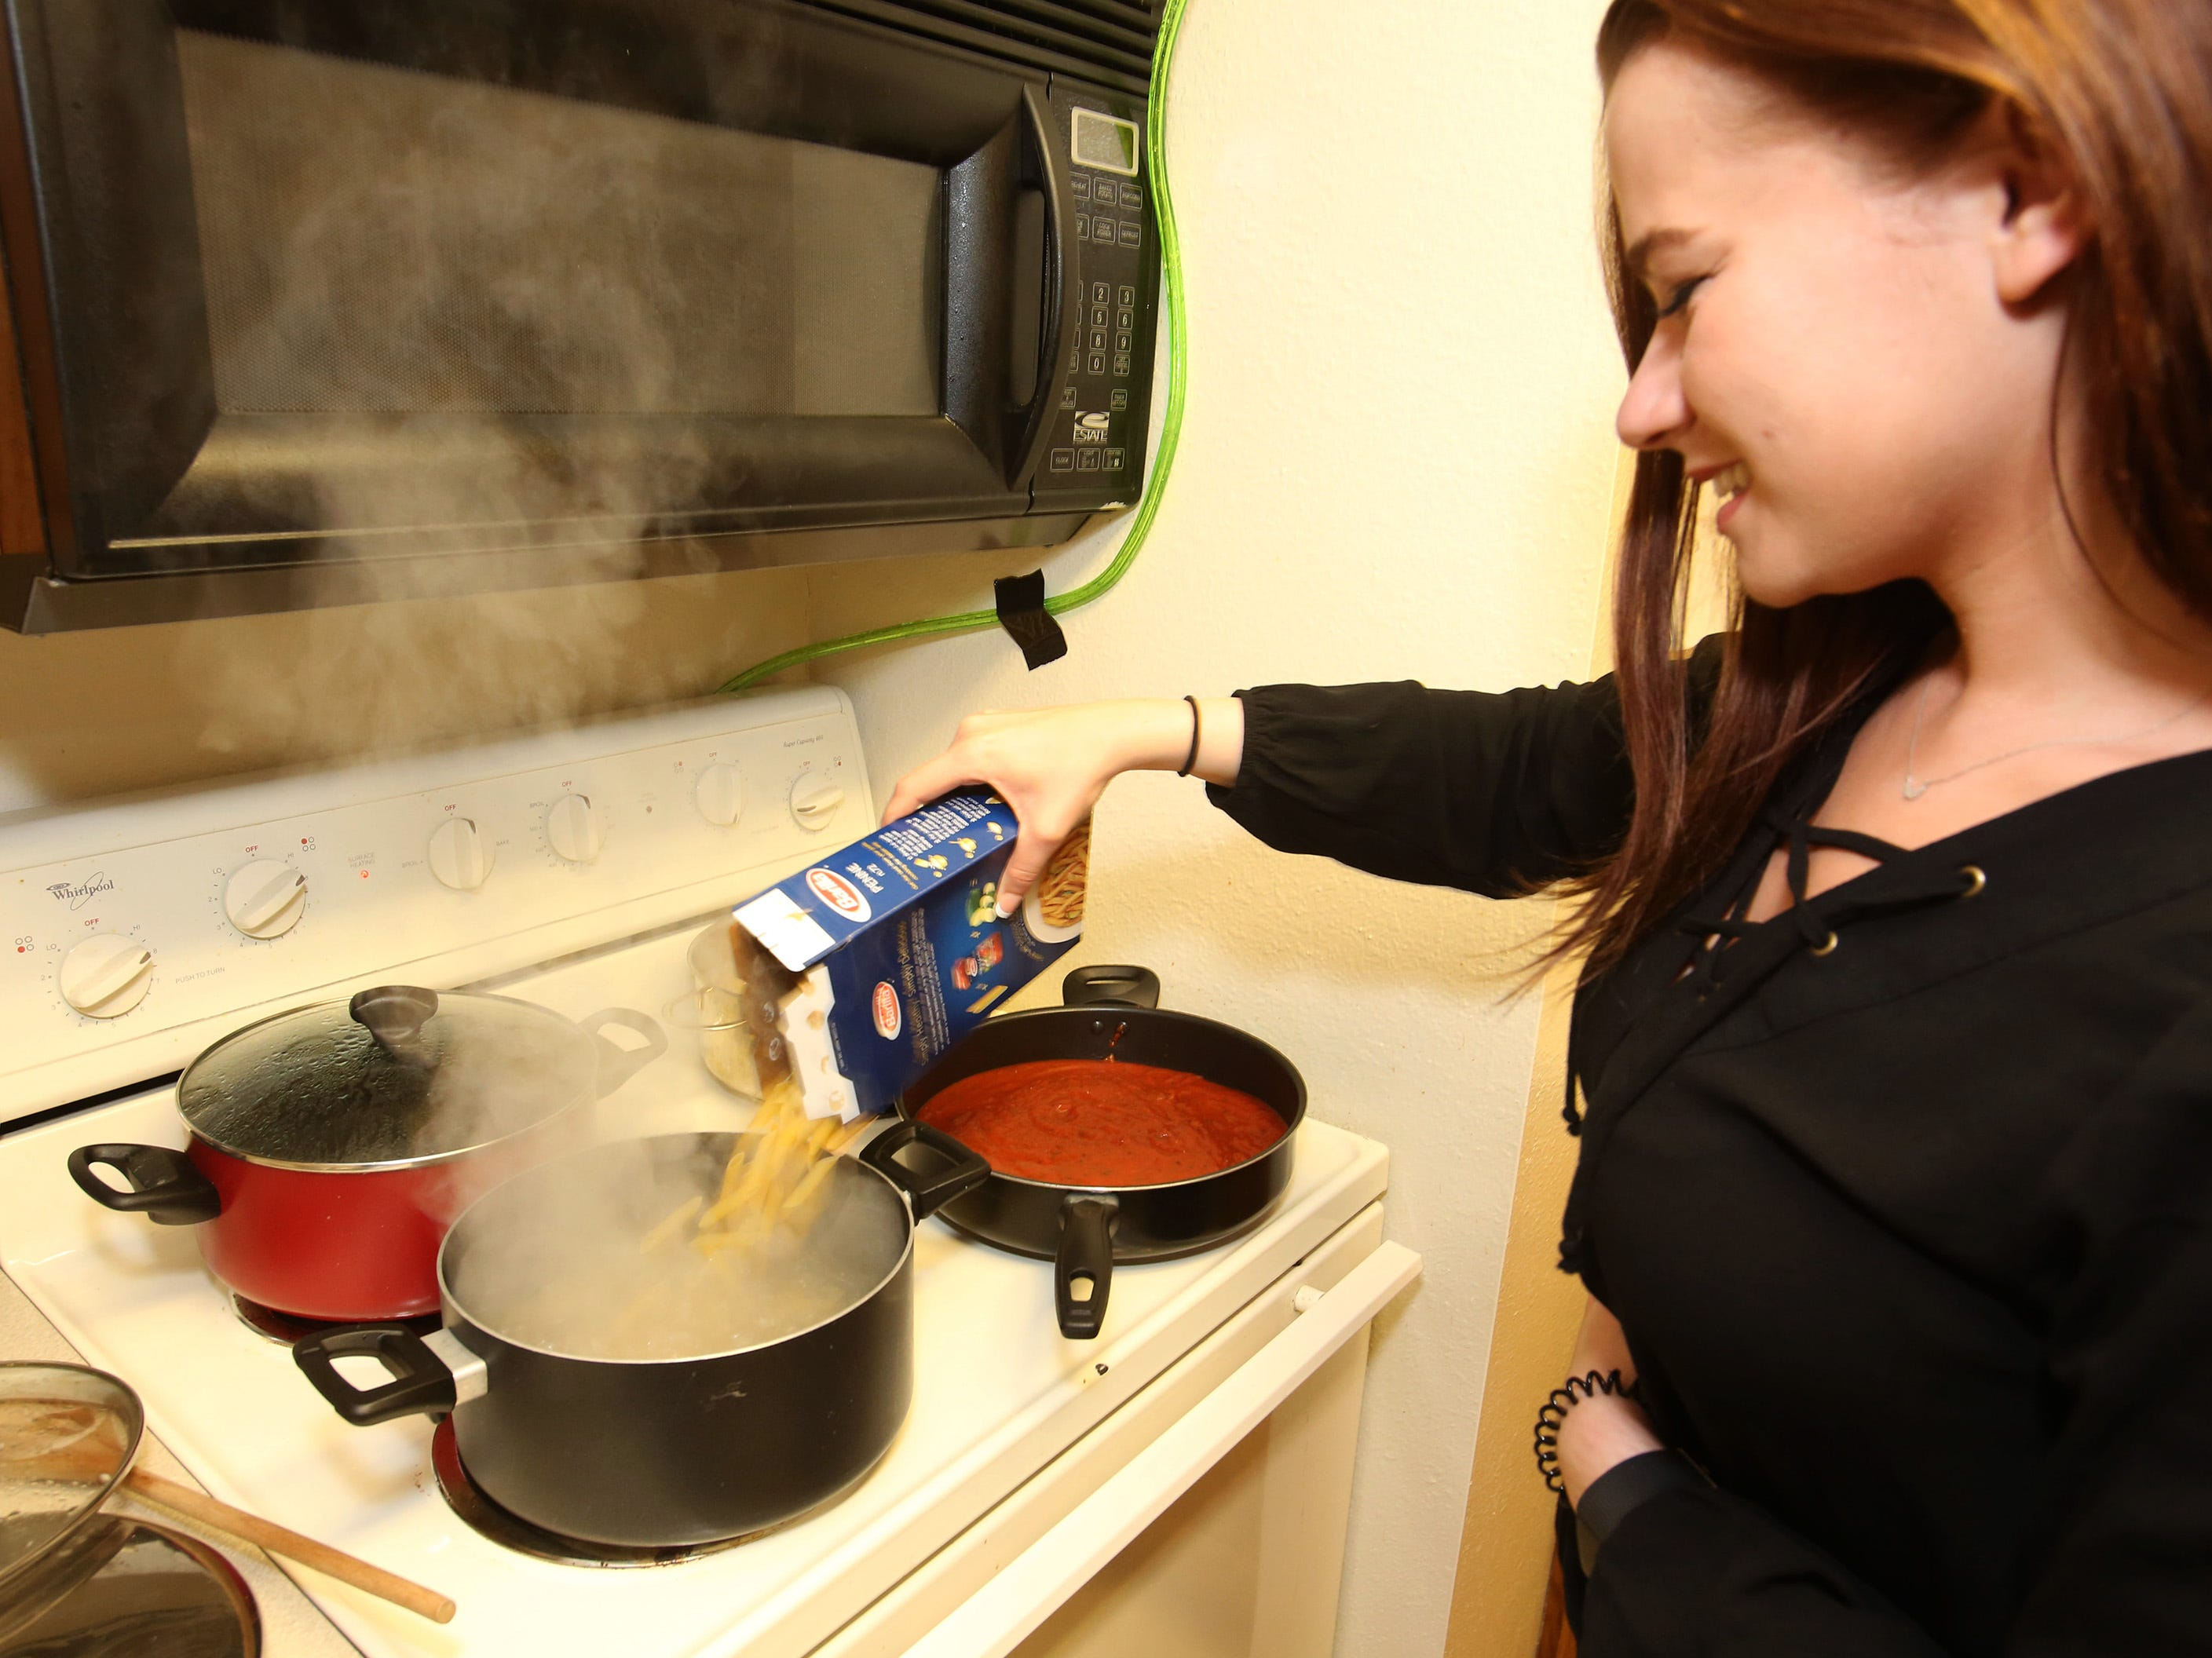 Rachel Witt, a senior in mechanical engineering, prepares the pasta dinner shared with fellow students and faculty in an effort to meet new people.